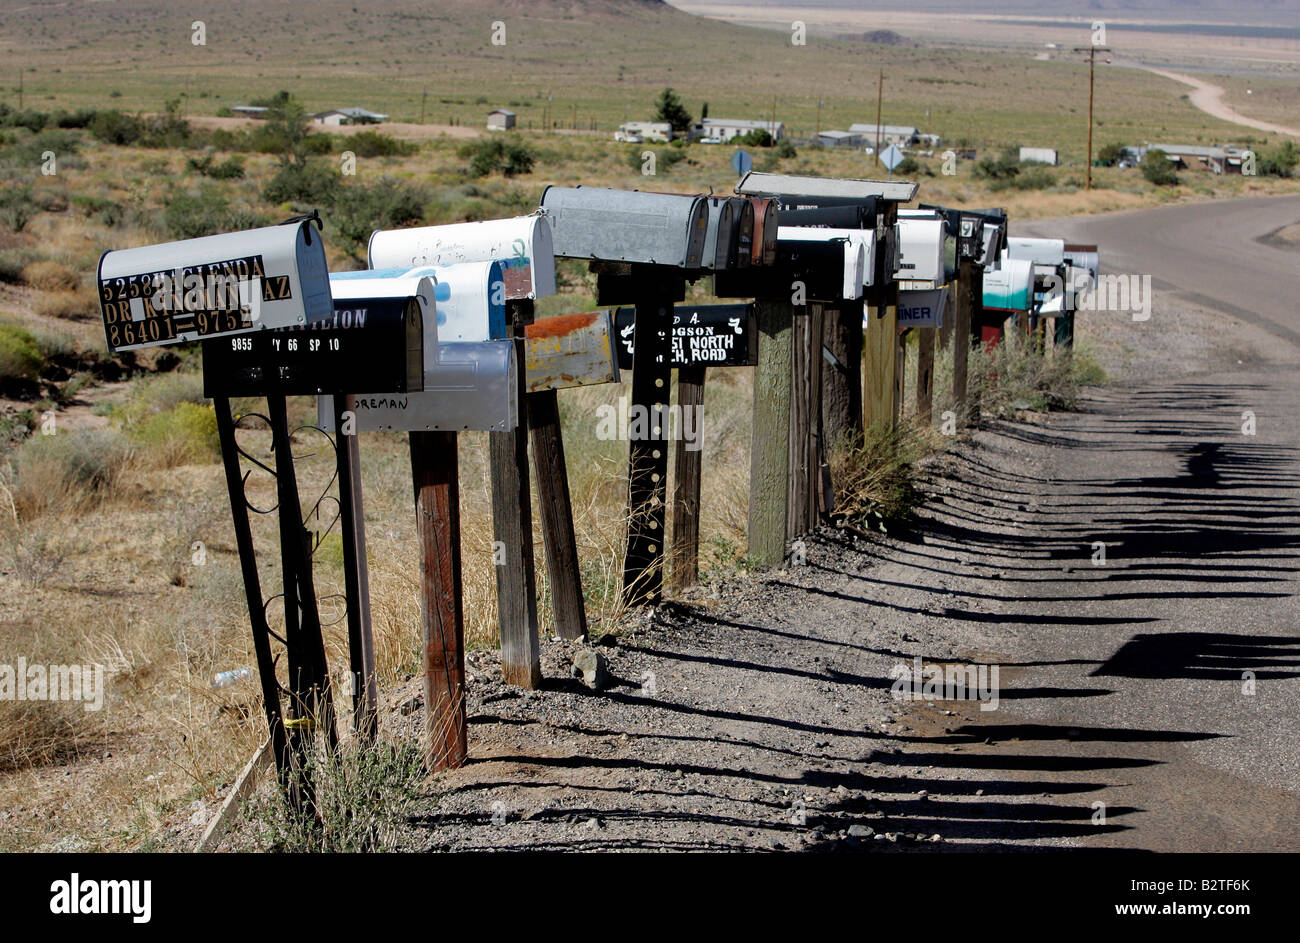 US KINGMAN Mailboxes on the famous Route 66 PHOTO GERRIT DE HEUS - Stock Image